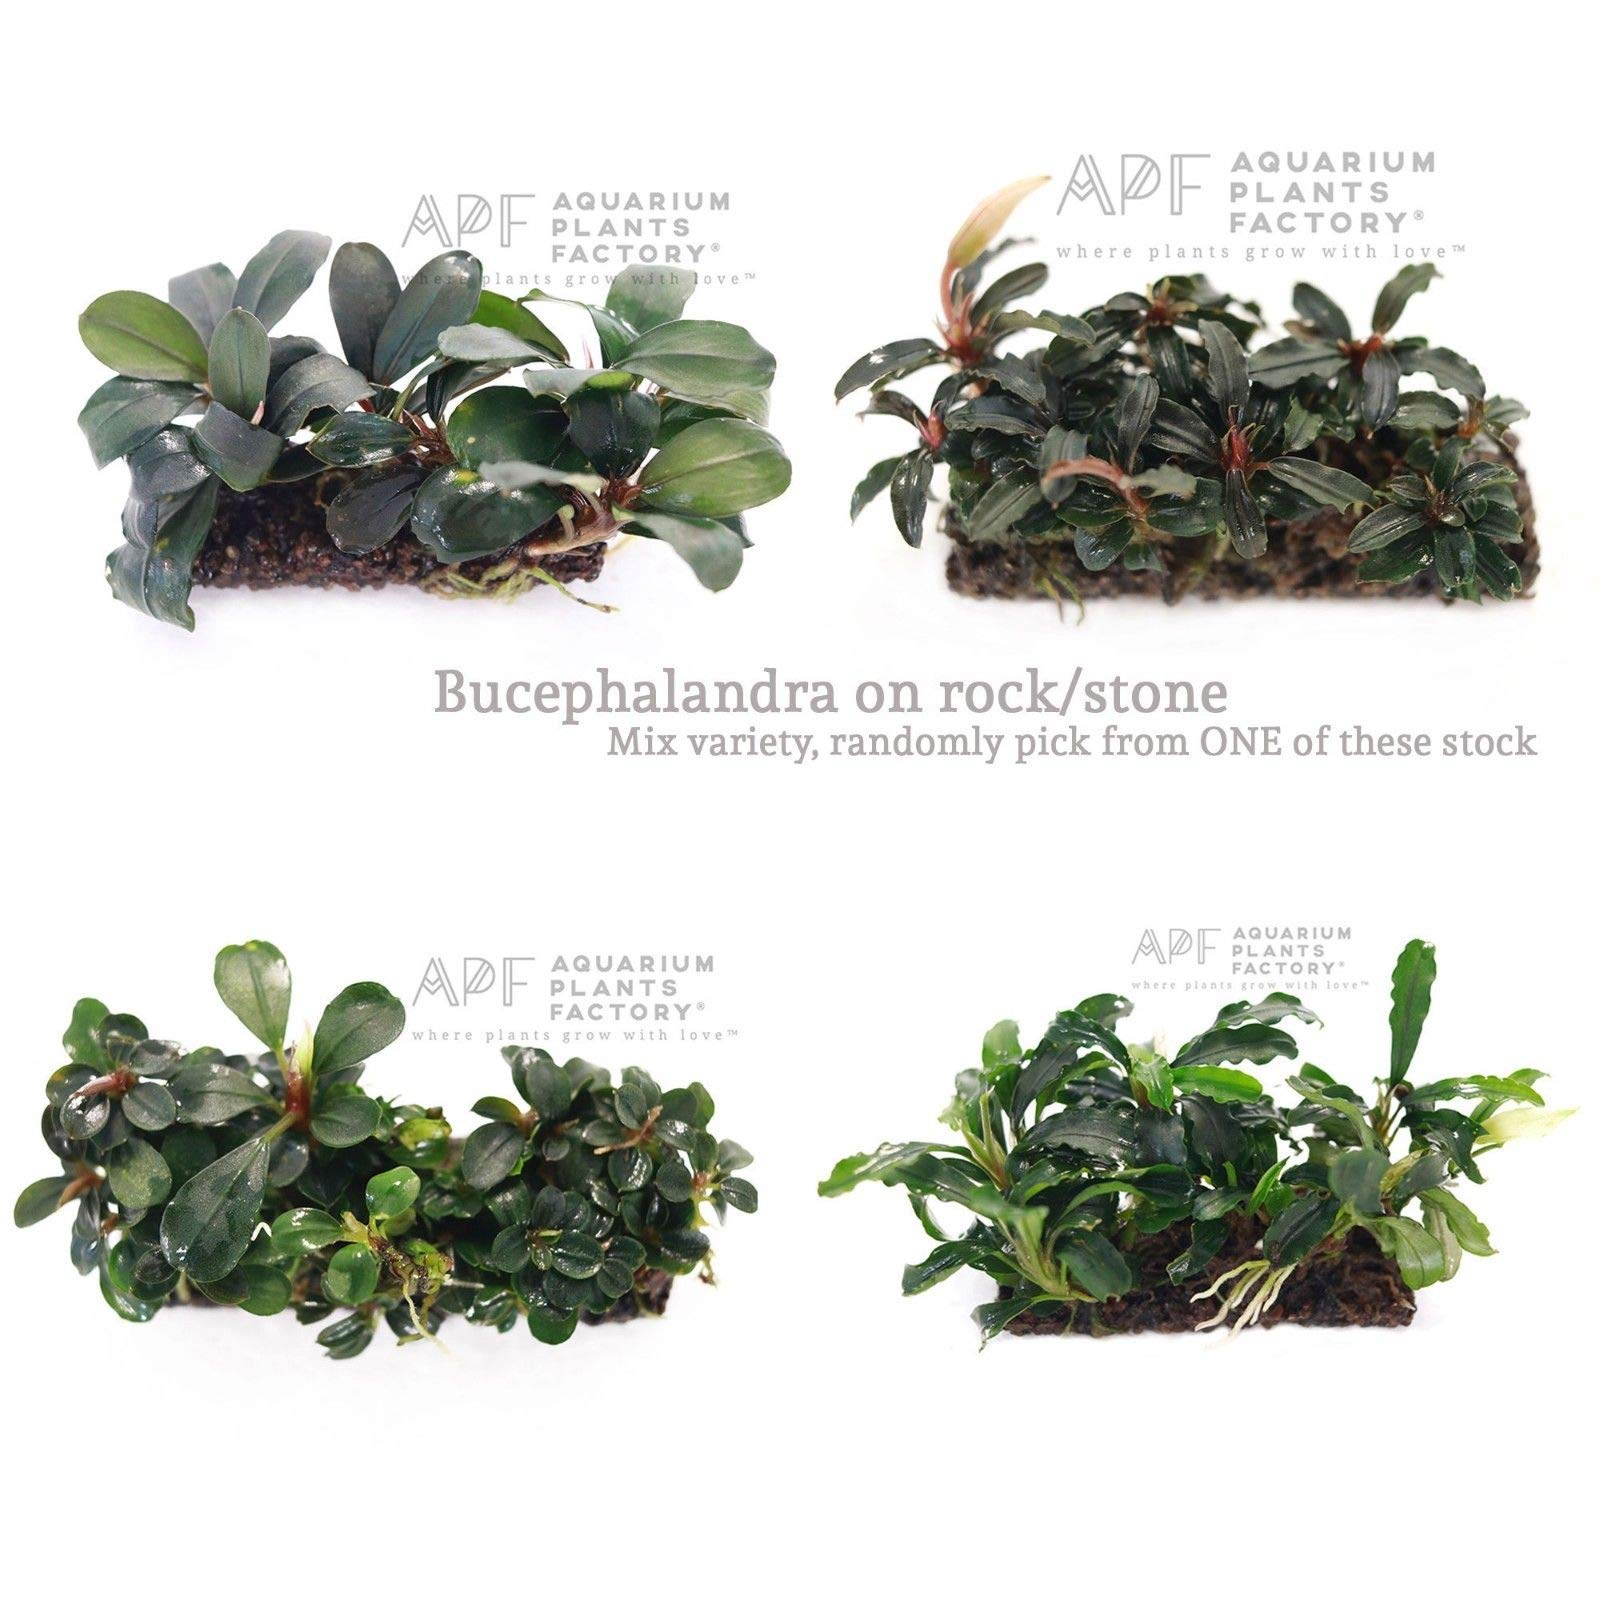 One Bucephalandra Mix Variety on Rock Stone Bucep Buce Rare Live Aquarium Plants